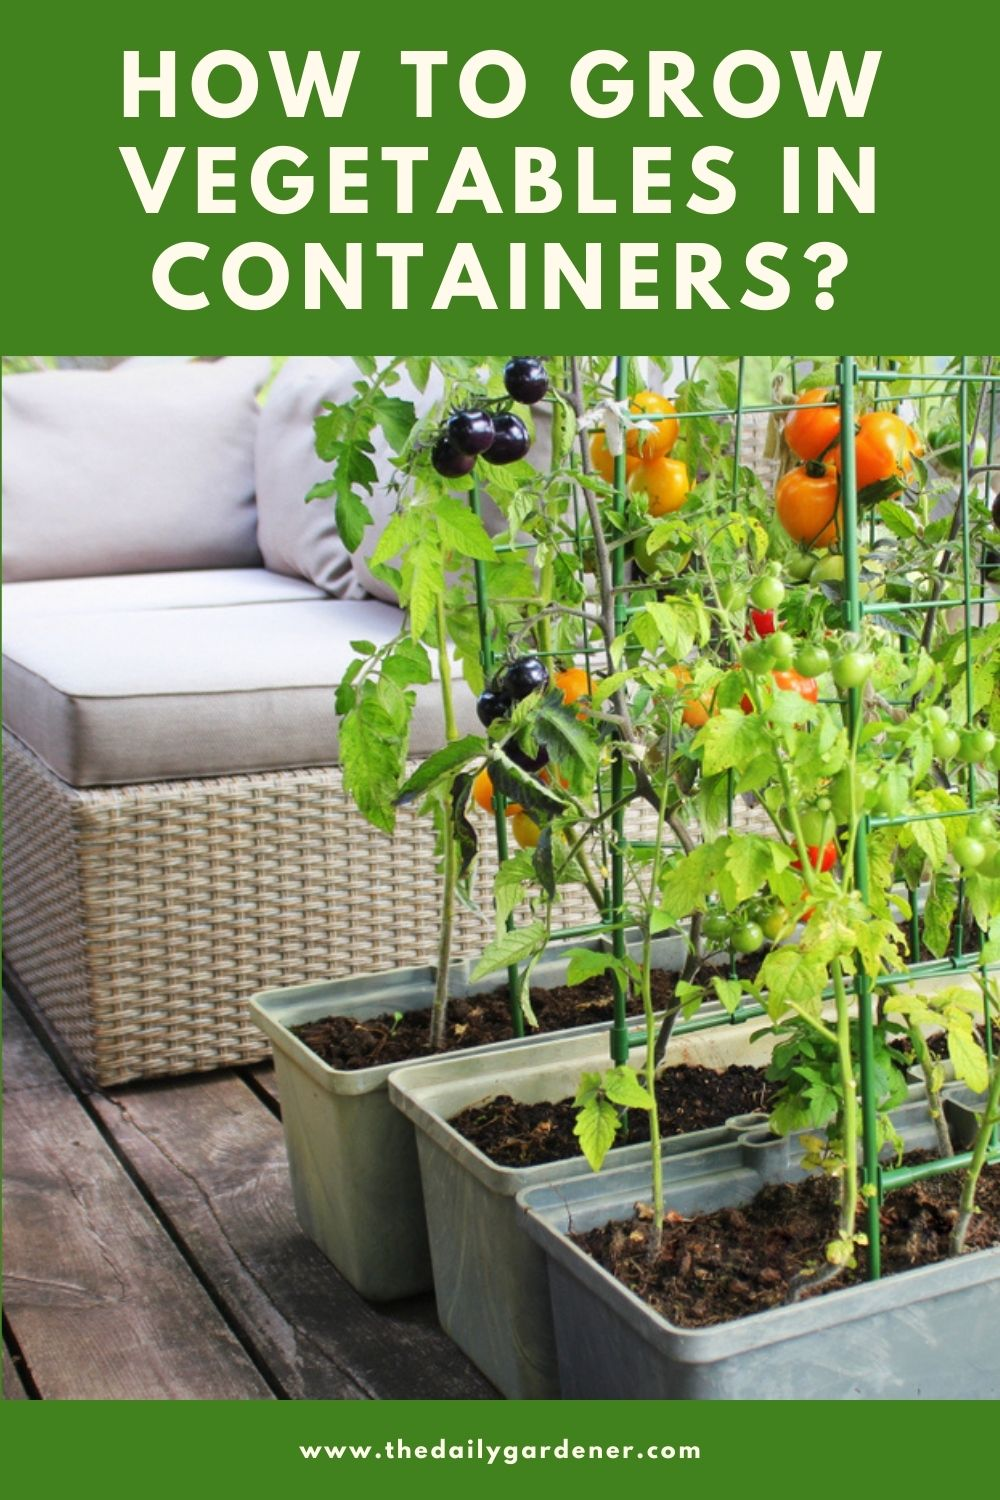 How to Grow Vegetables in Containers 2